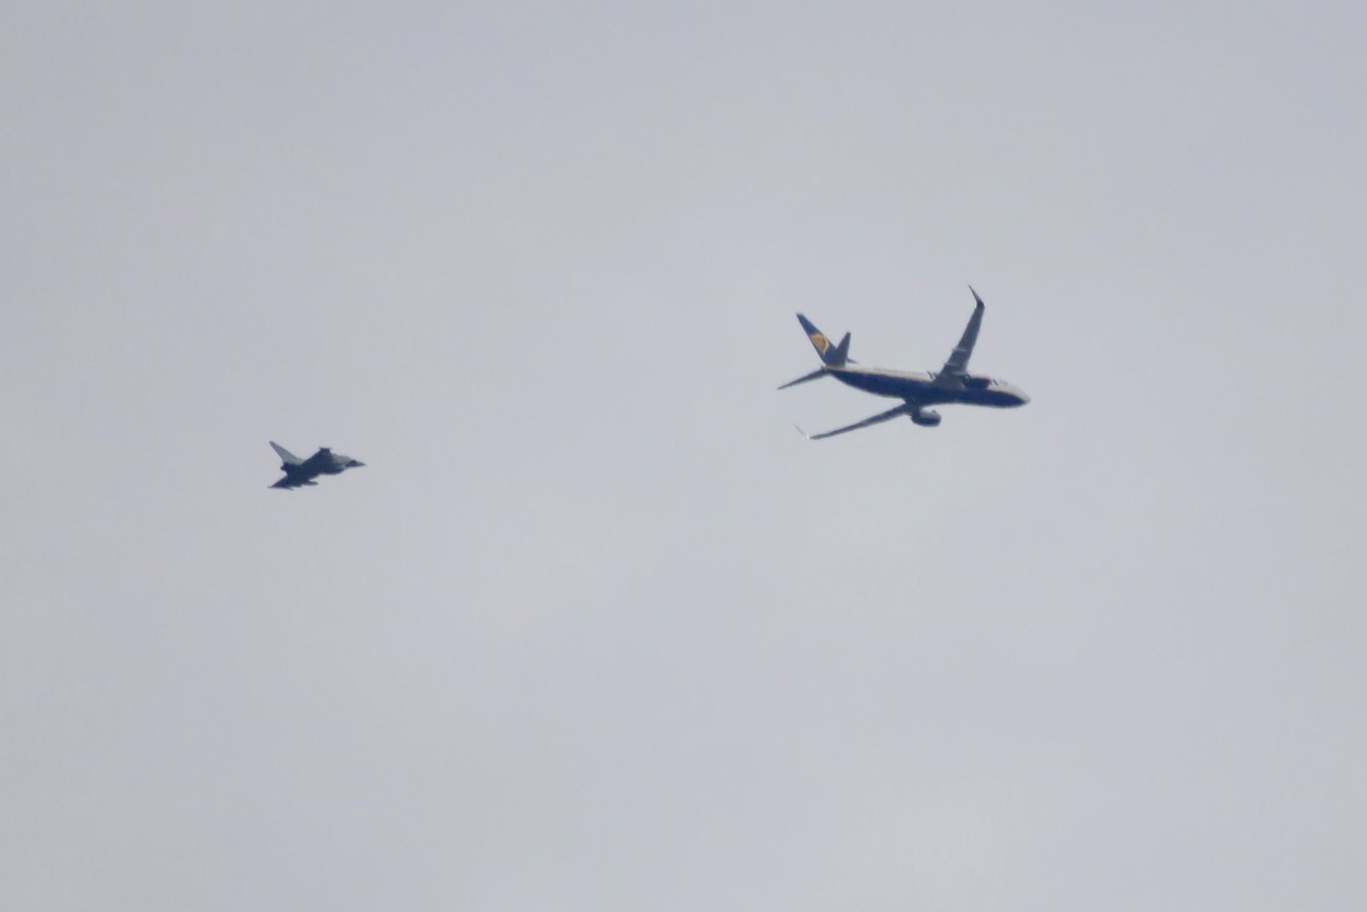 RAF Typhoon fighters escort Ryanair flight to Stansted airport